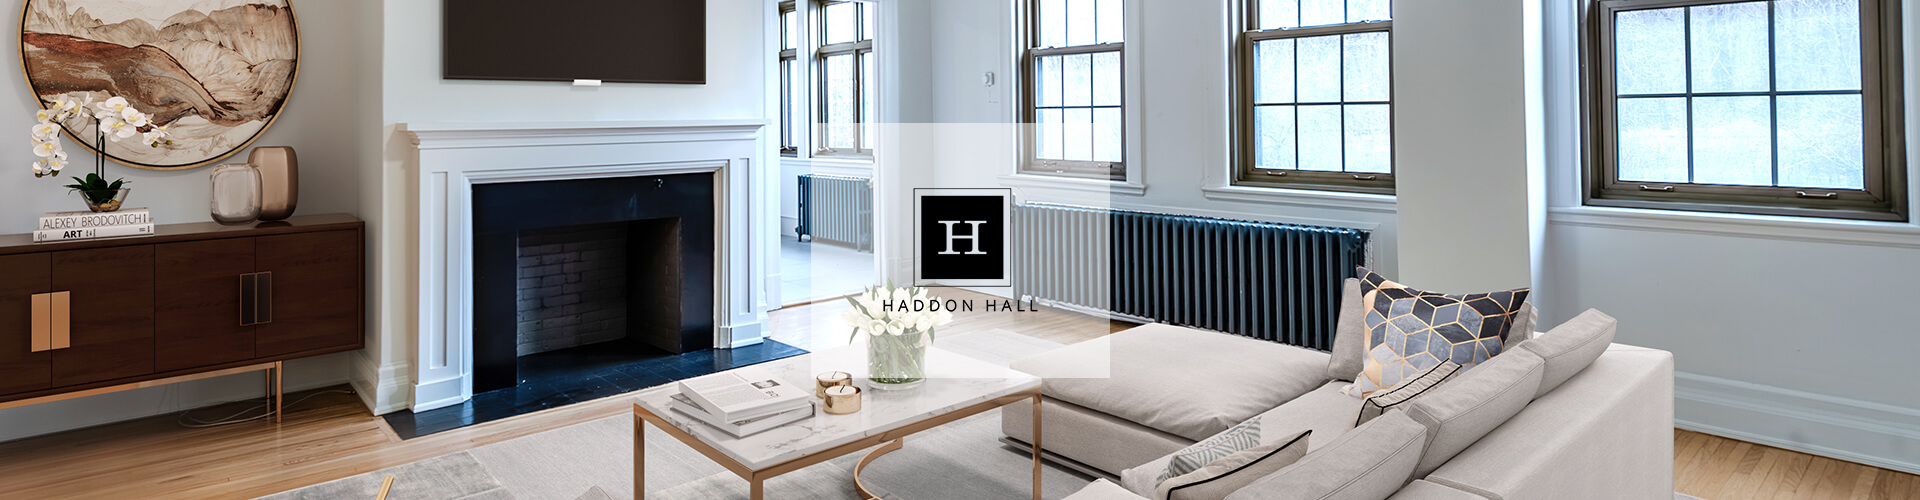 Beautiful living at Haddon Hall Apartments in Montreal. Rent with Minto Apartments.